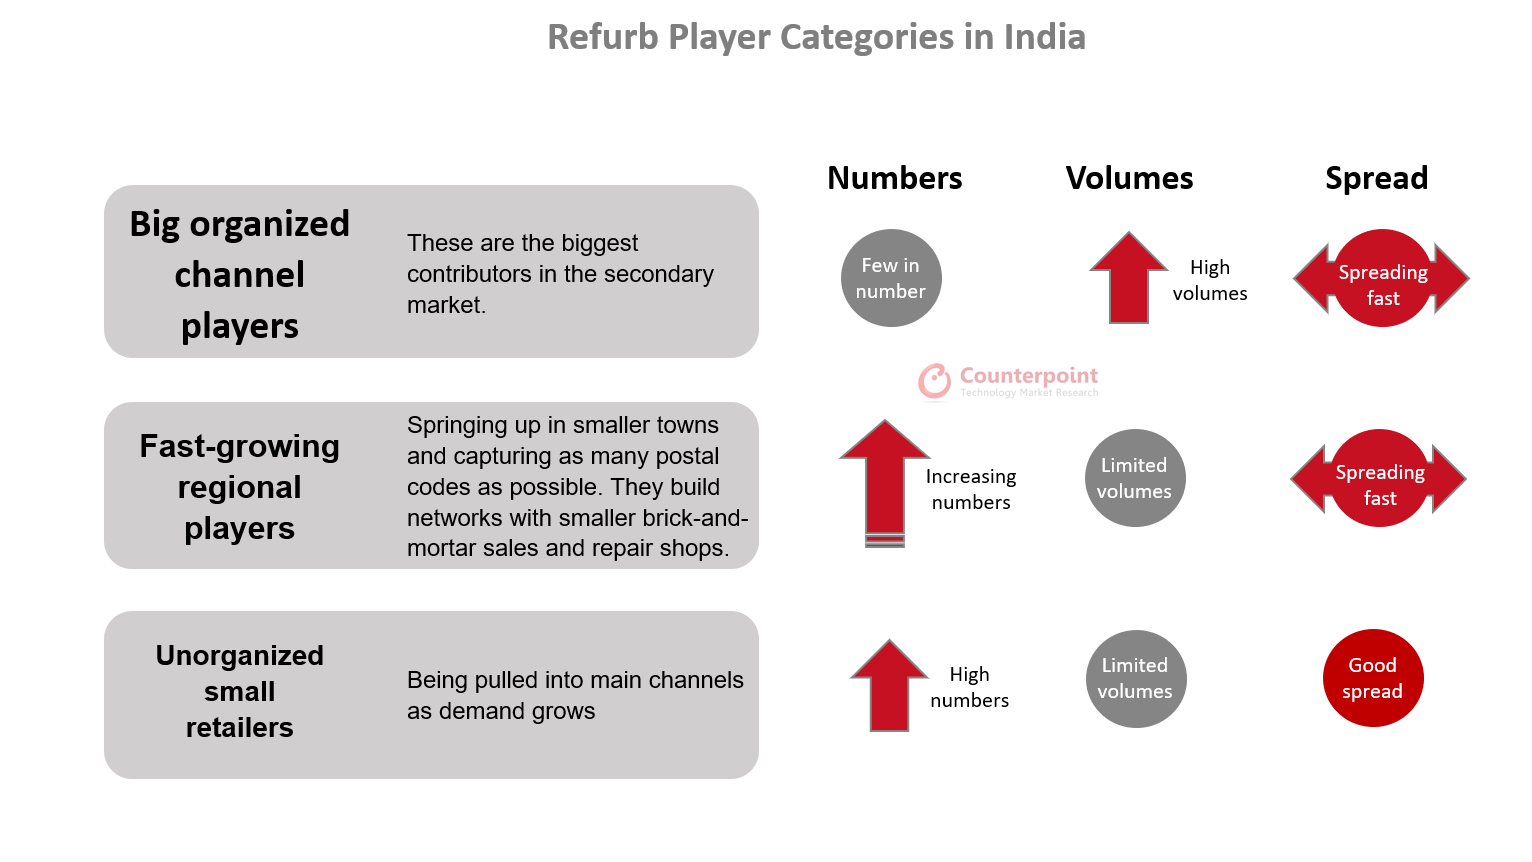 Refurb Player Categories in India